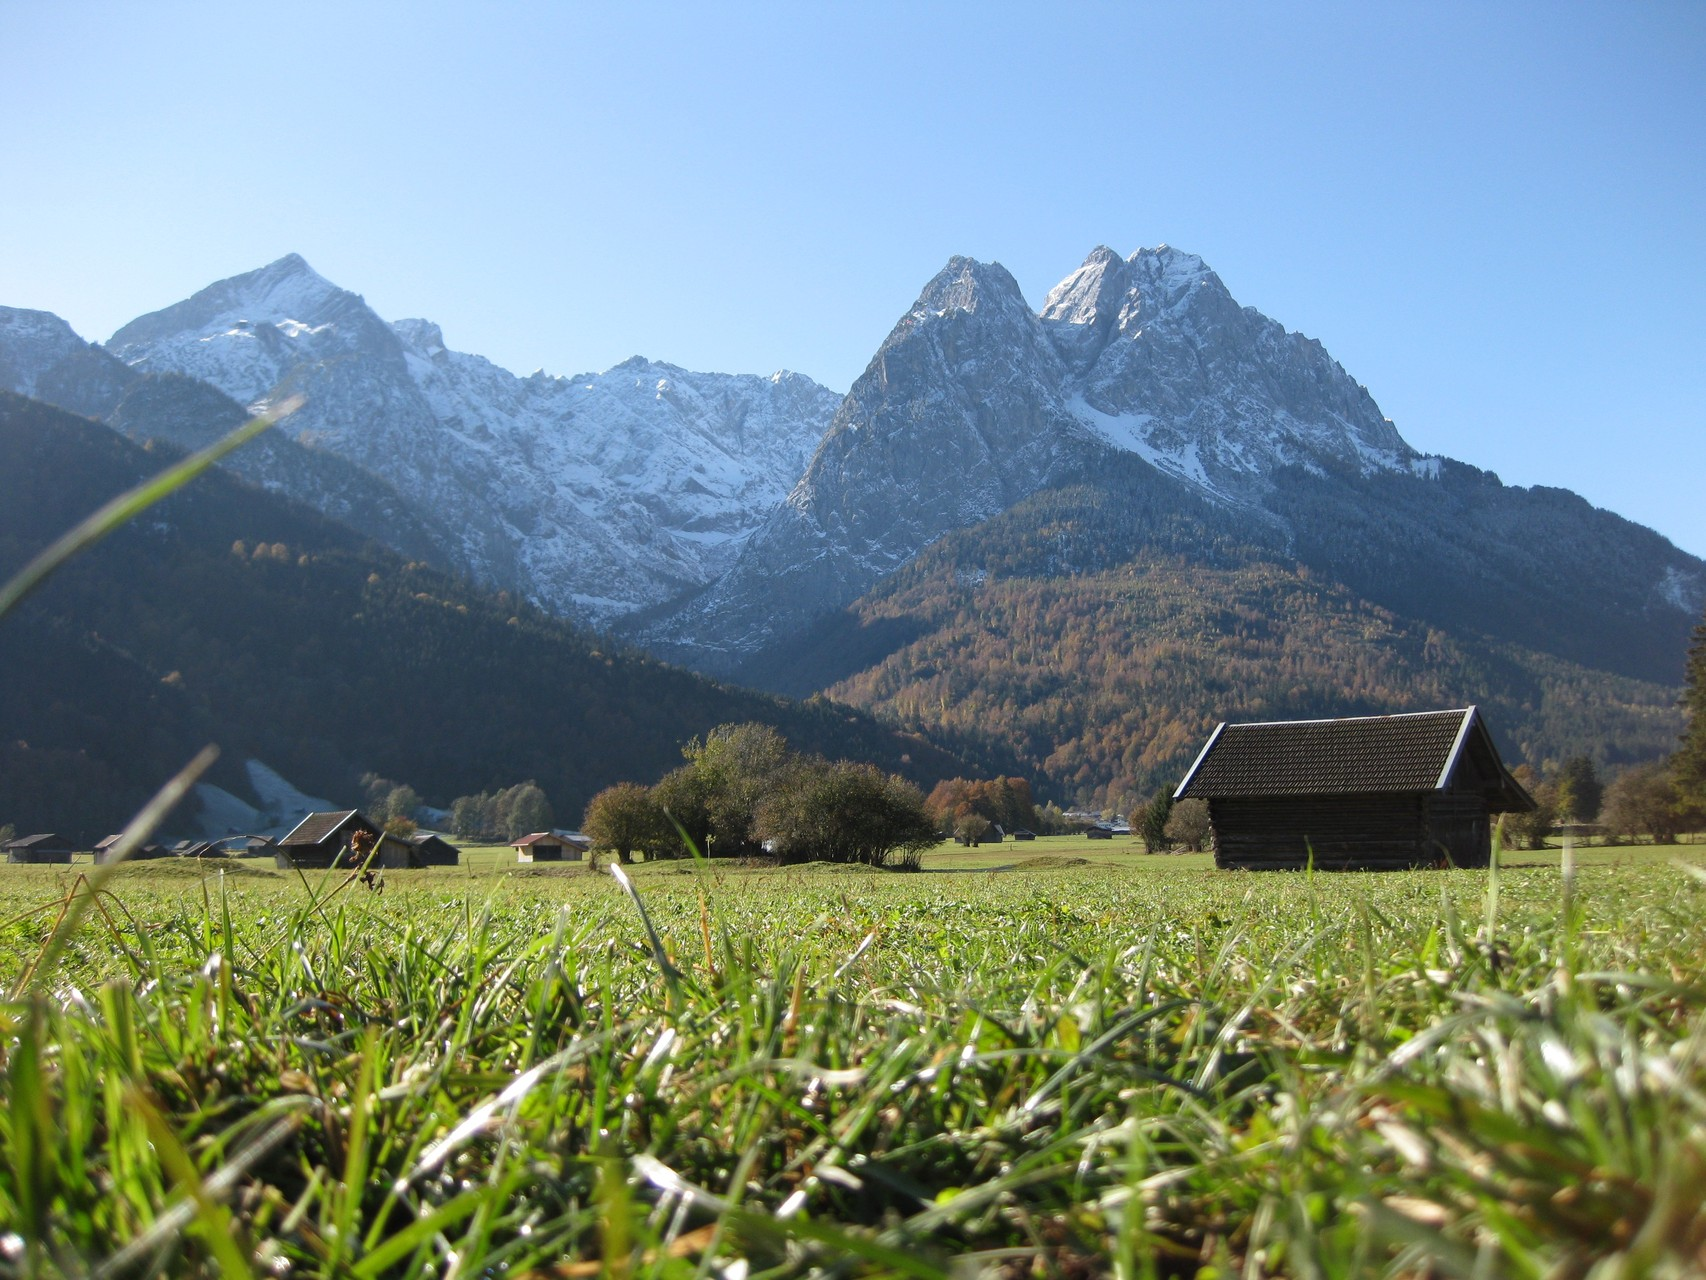 Mit dem Spirit of Mountains / www.wildnisgeist.de BewusstesNaturErleben in Garmisch-Partenkirchen , Exkursionen, Seminare, Bergwandern